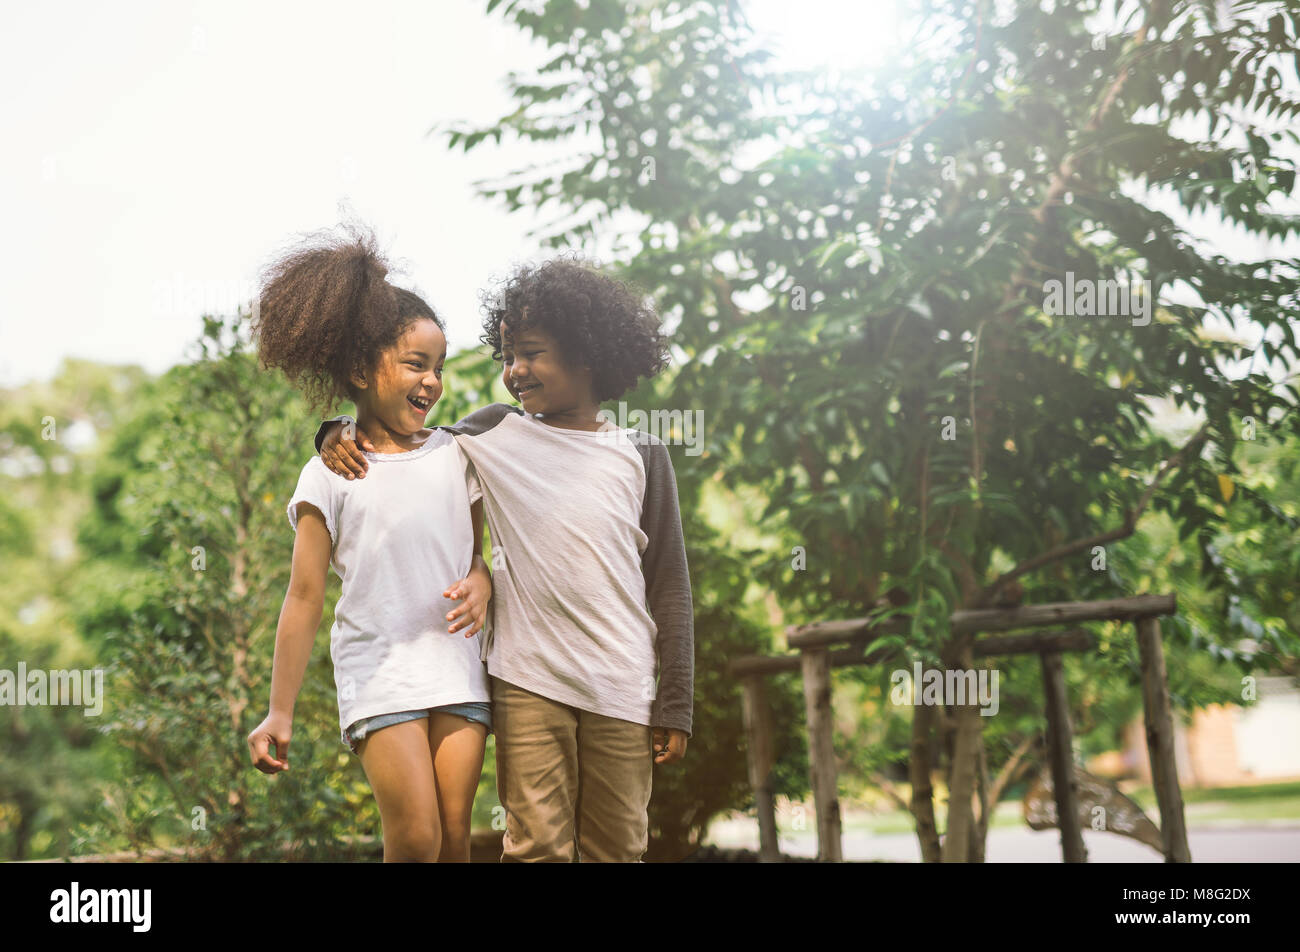 Children Friendship Togetherness Smiling Happiness Concept.Cute african american little boy and girl hug each other - Stock Image